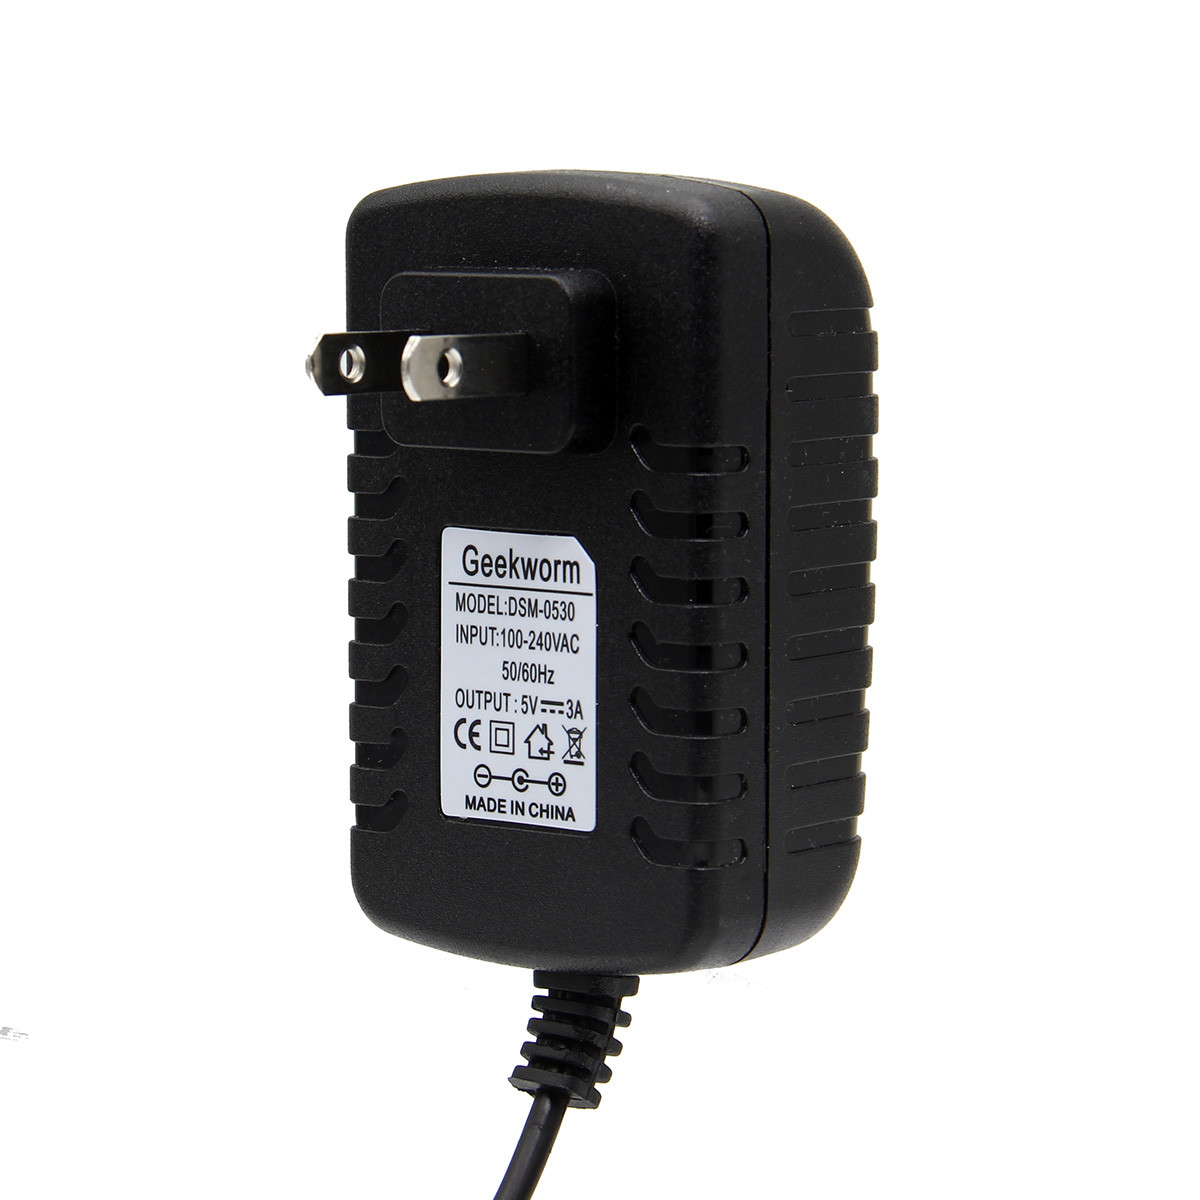 Geekworm US Standard DC 5V 3.0A Power Supply Adapter with Switch For Raspberry Pi